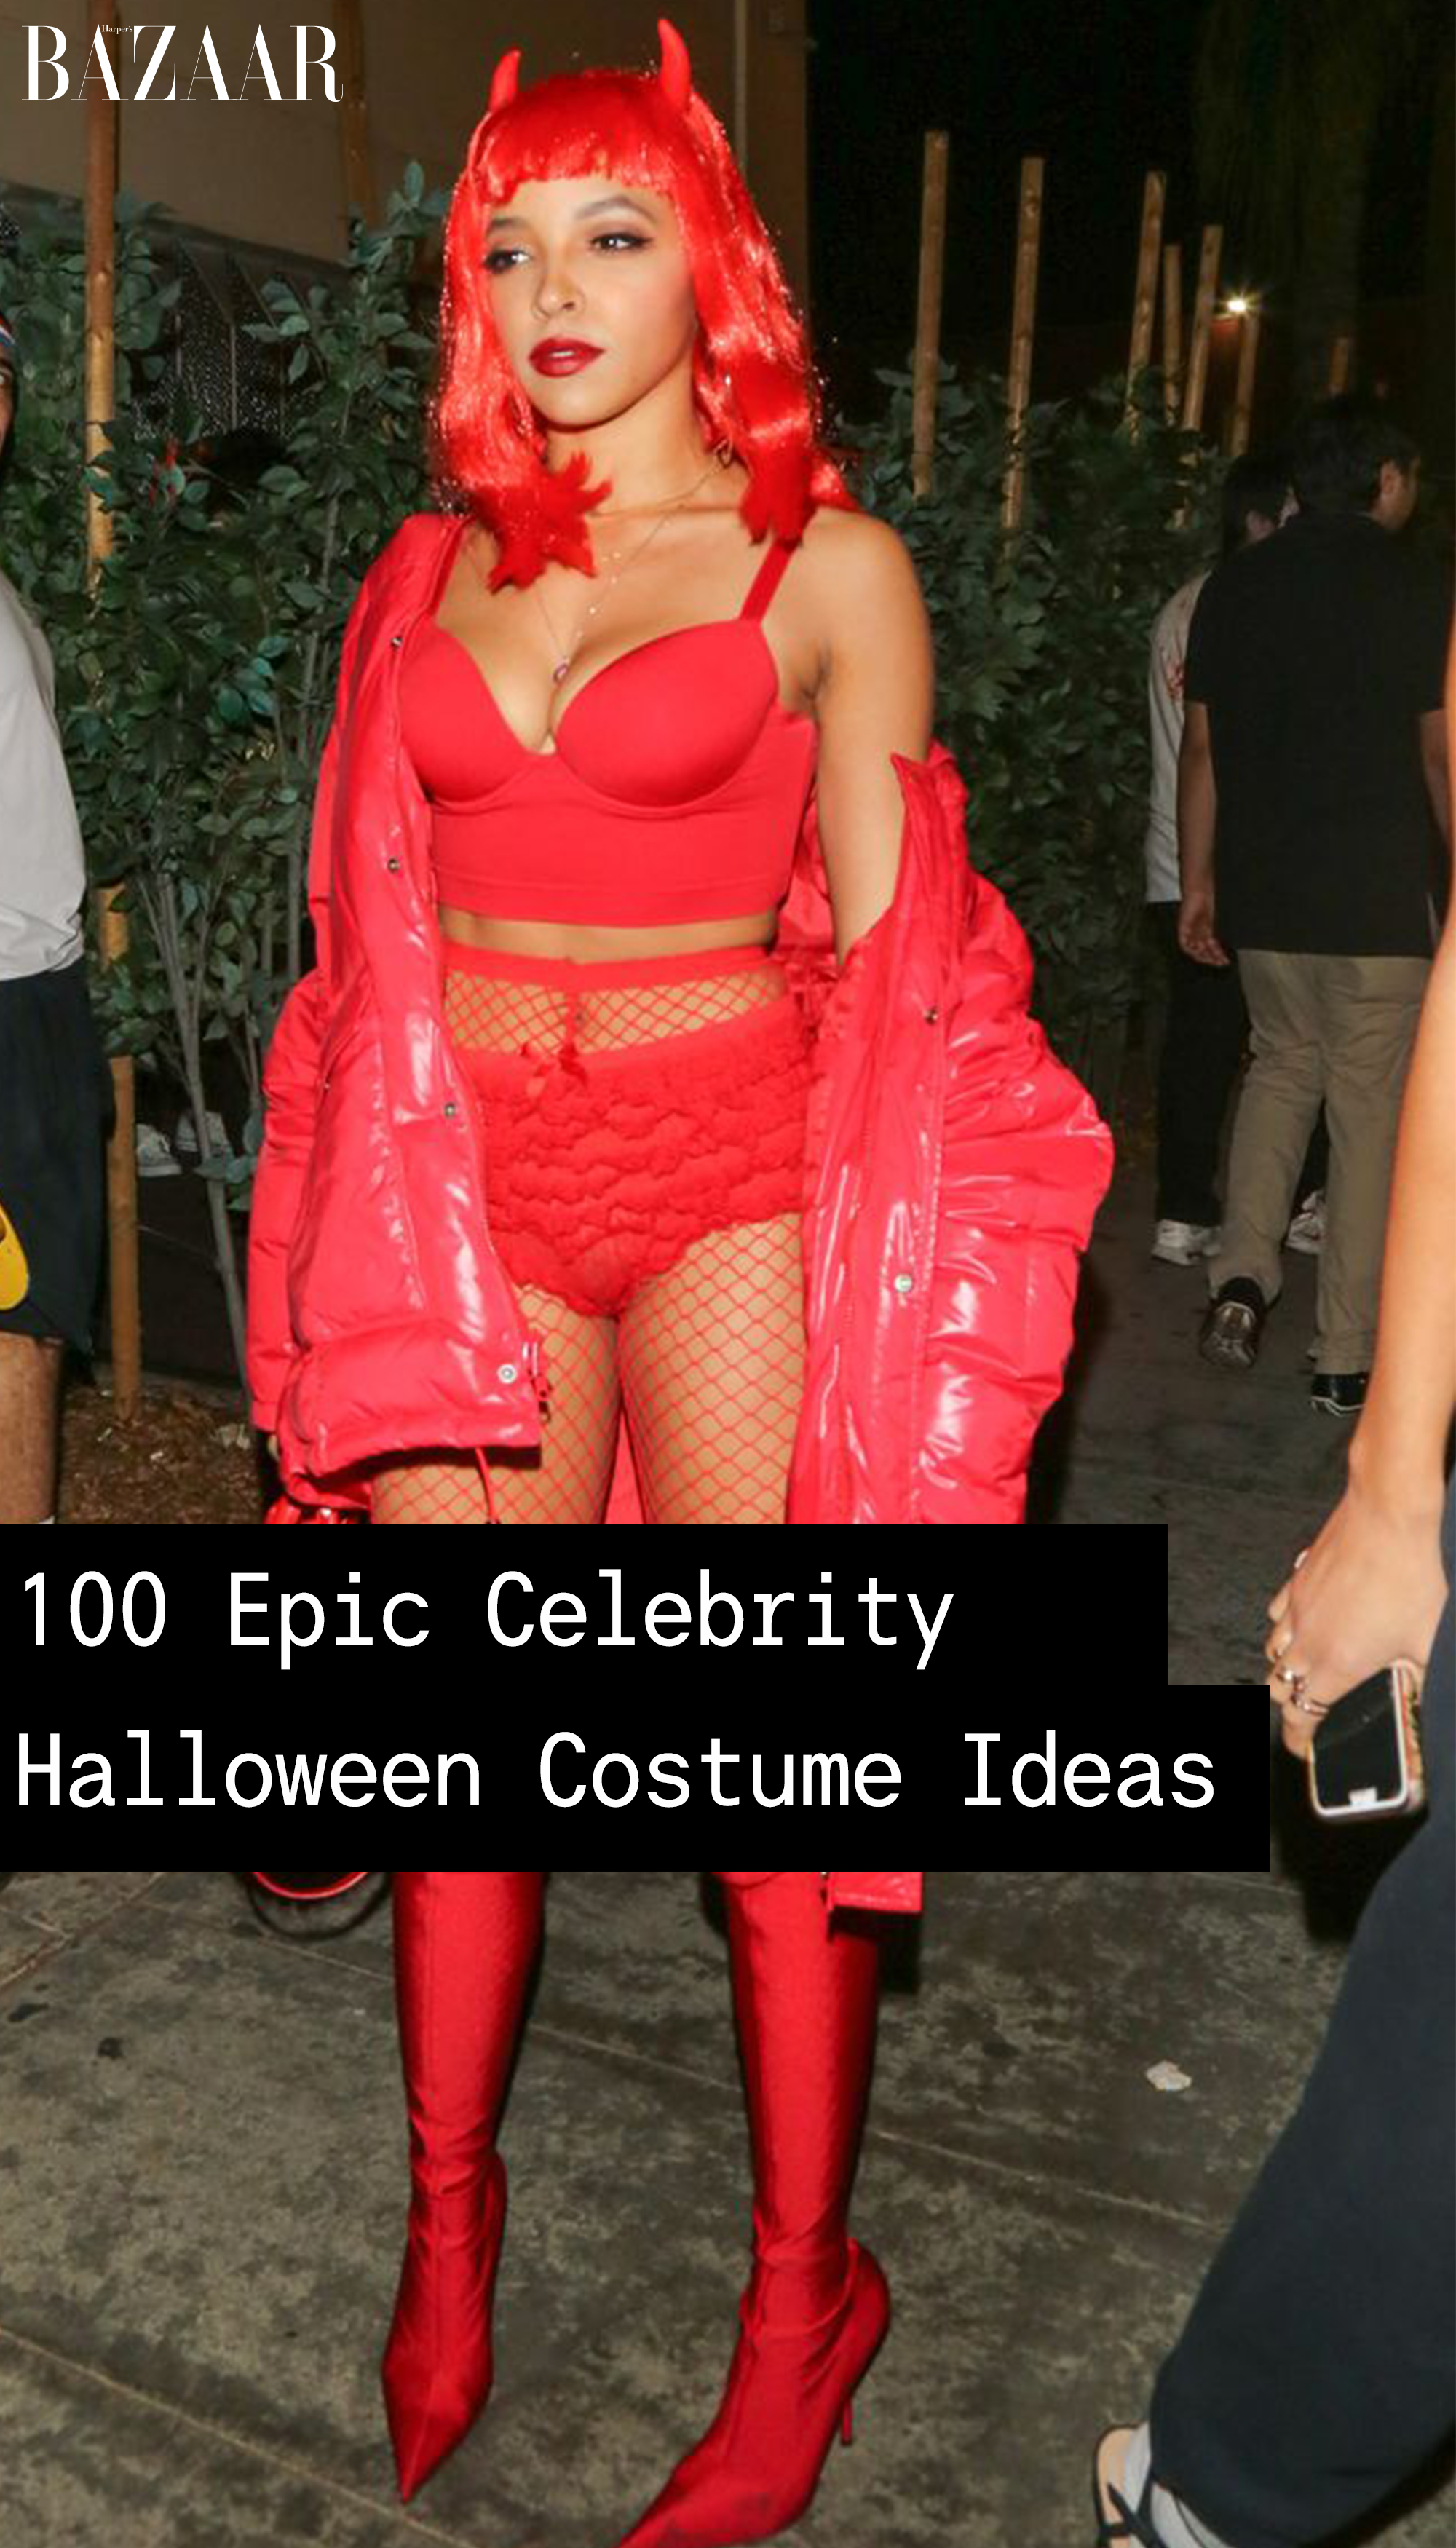 The 100 Most Epic Celebrity Halloween Costume Ideas ...